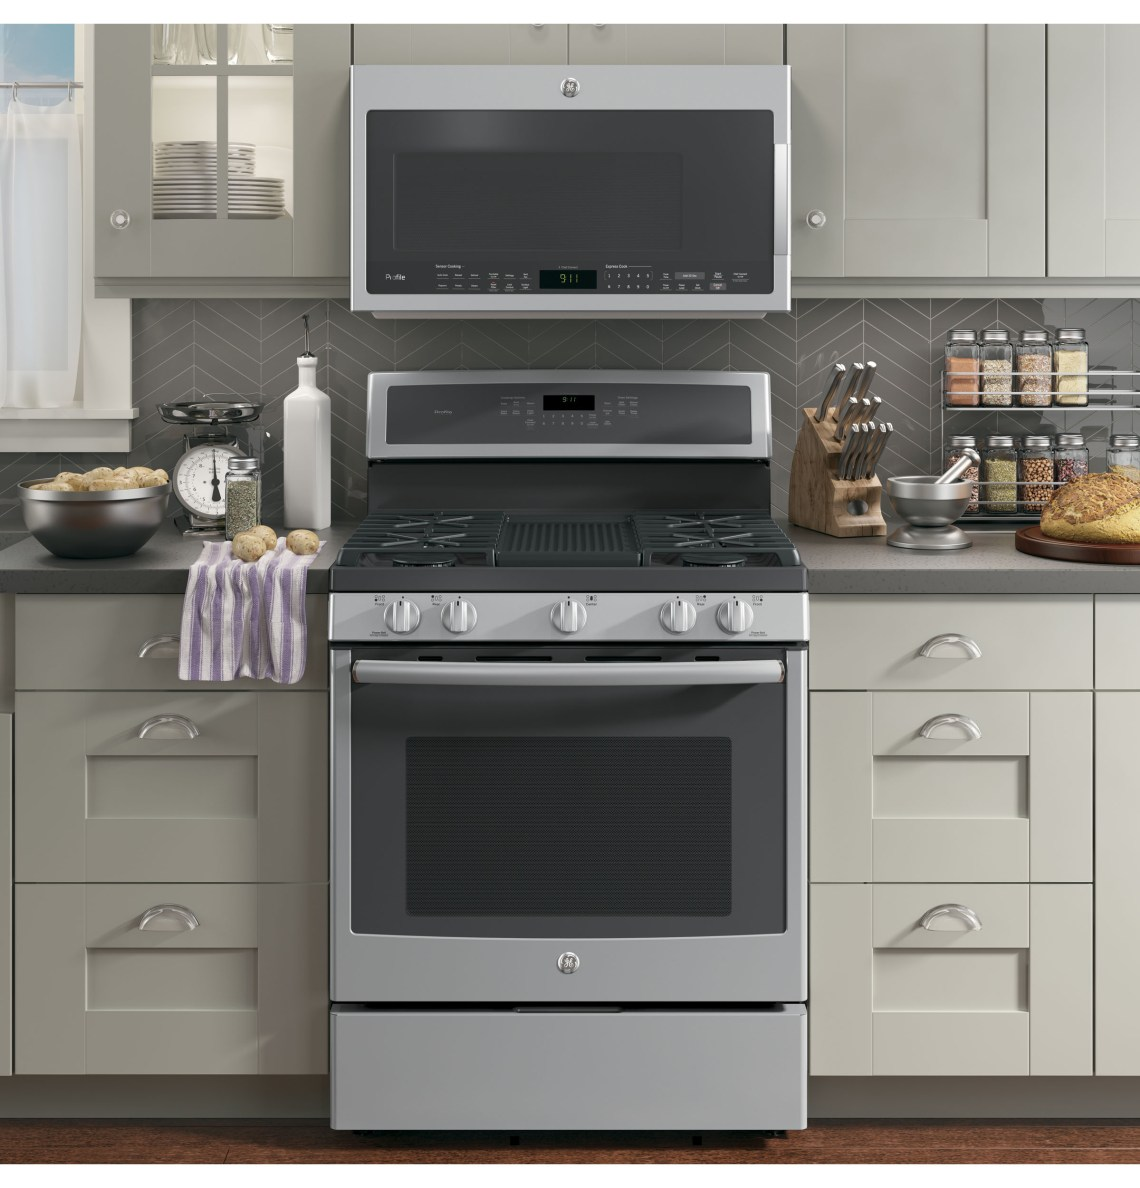 GE Appliances Prepping for the Holidays with Best Buy via Misty Nelson frostedblog.com